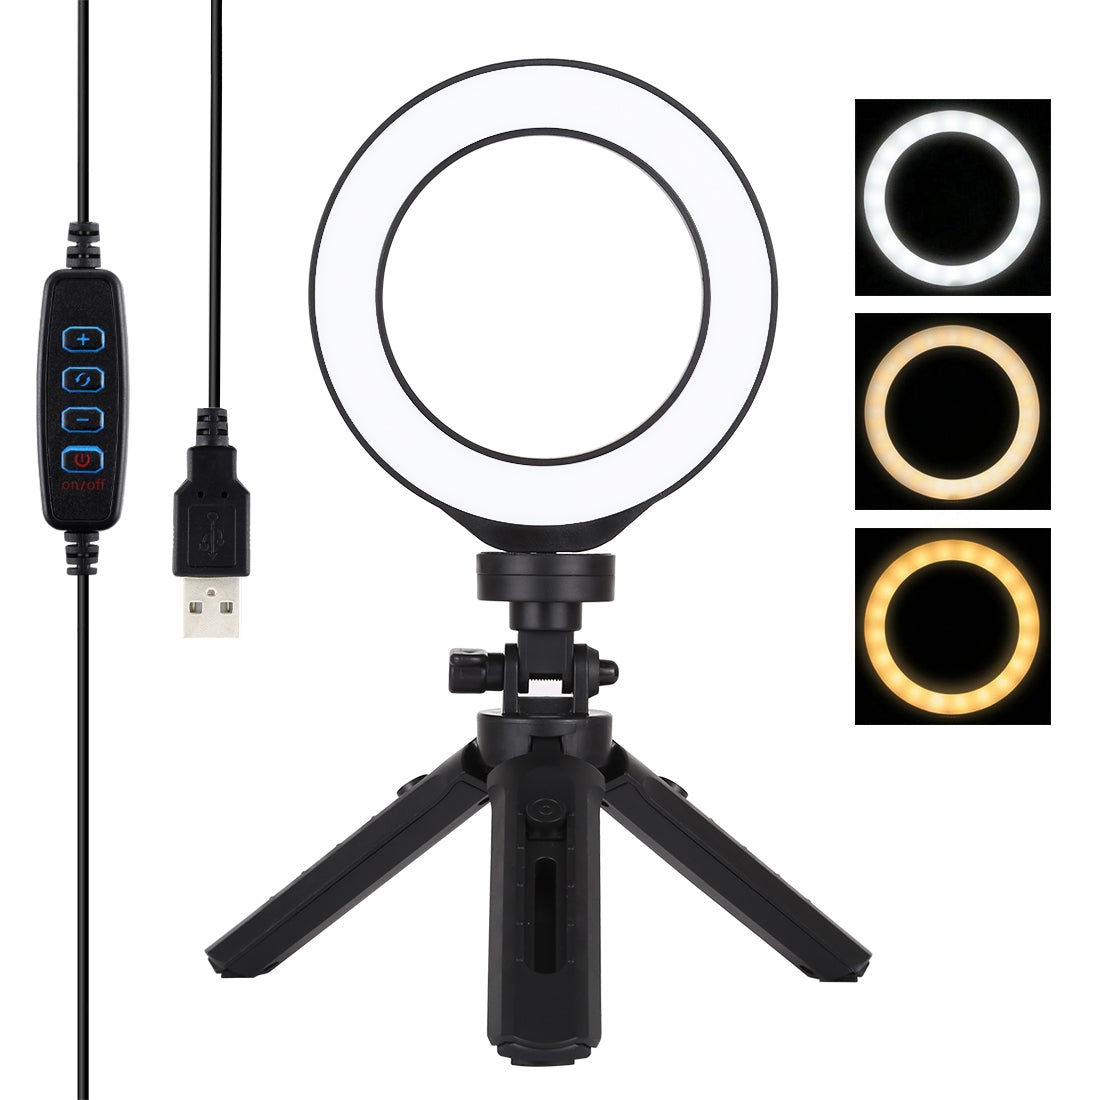 4.7 inch 12cm USB 3 Modes Dimmable LED Ring Vlogging Photography Video Lights + Pocket Tripod Mount Kit with Cold Shoe Tripod Bal